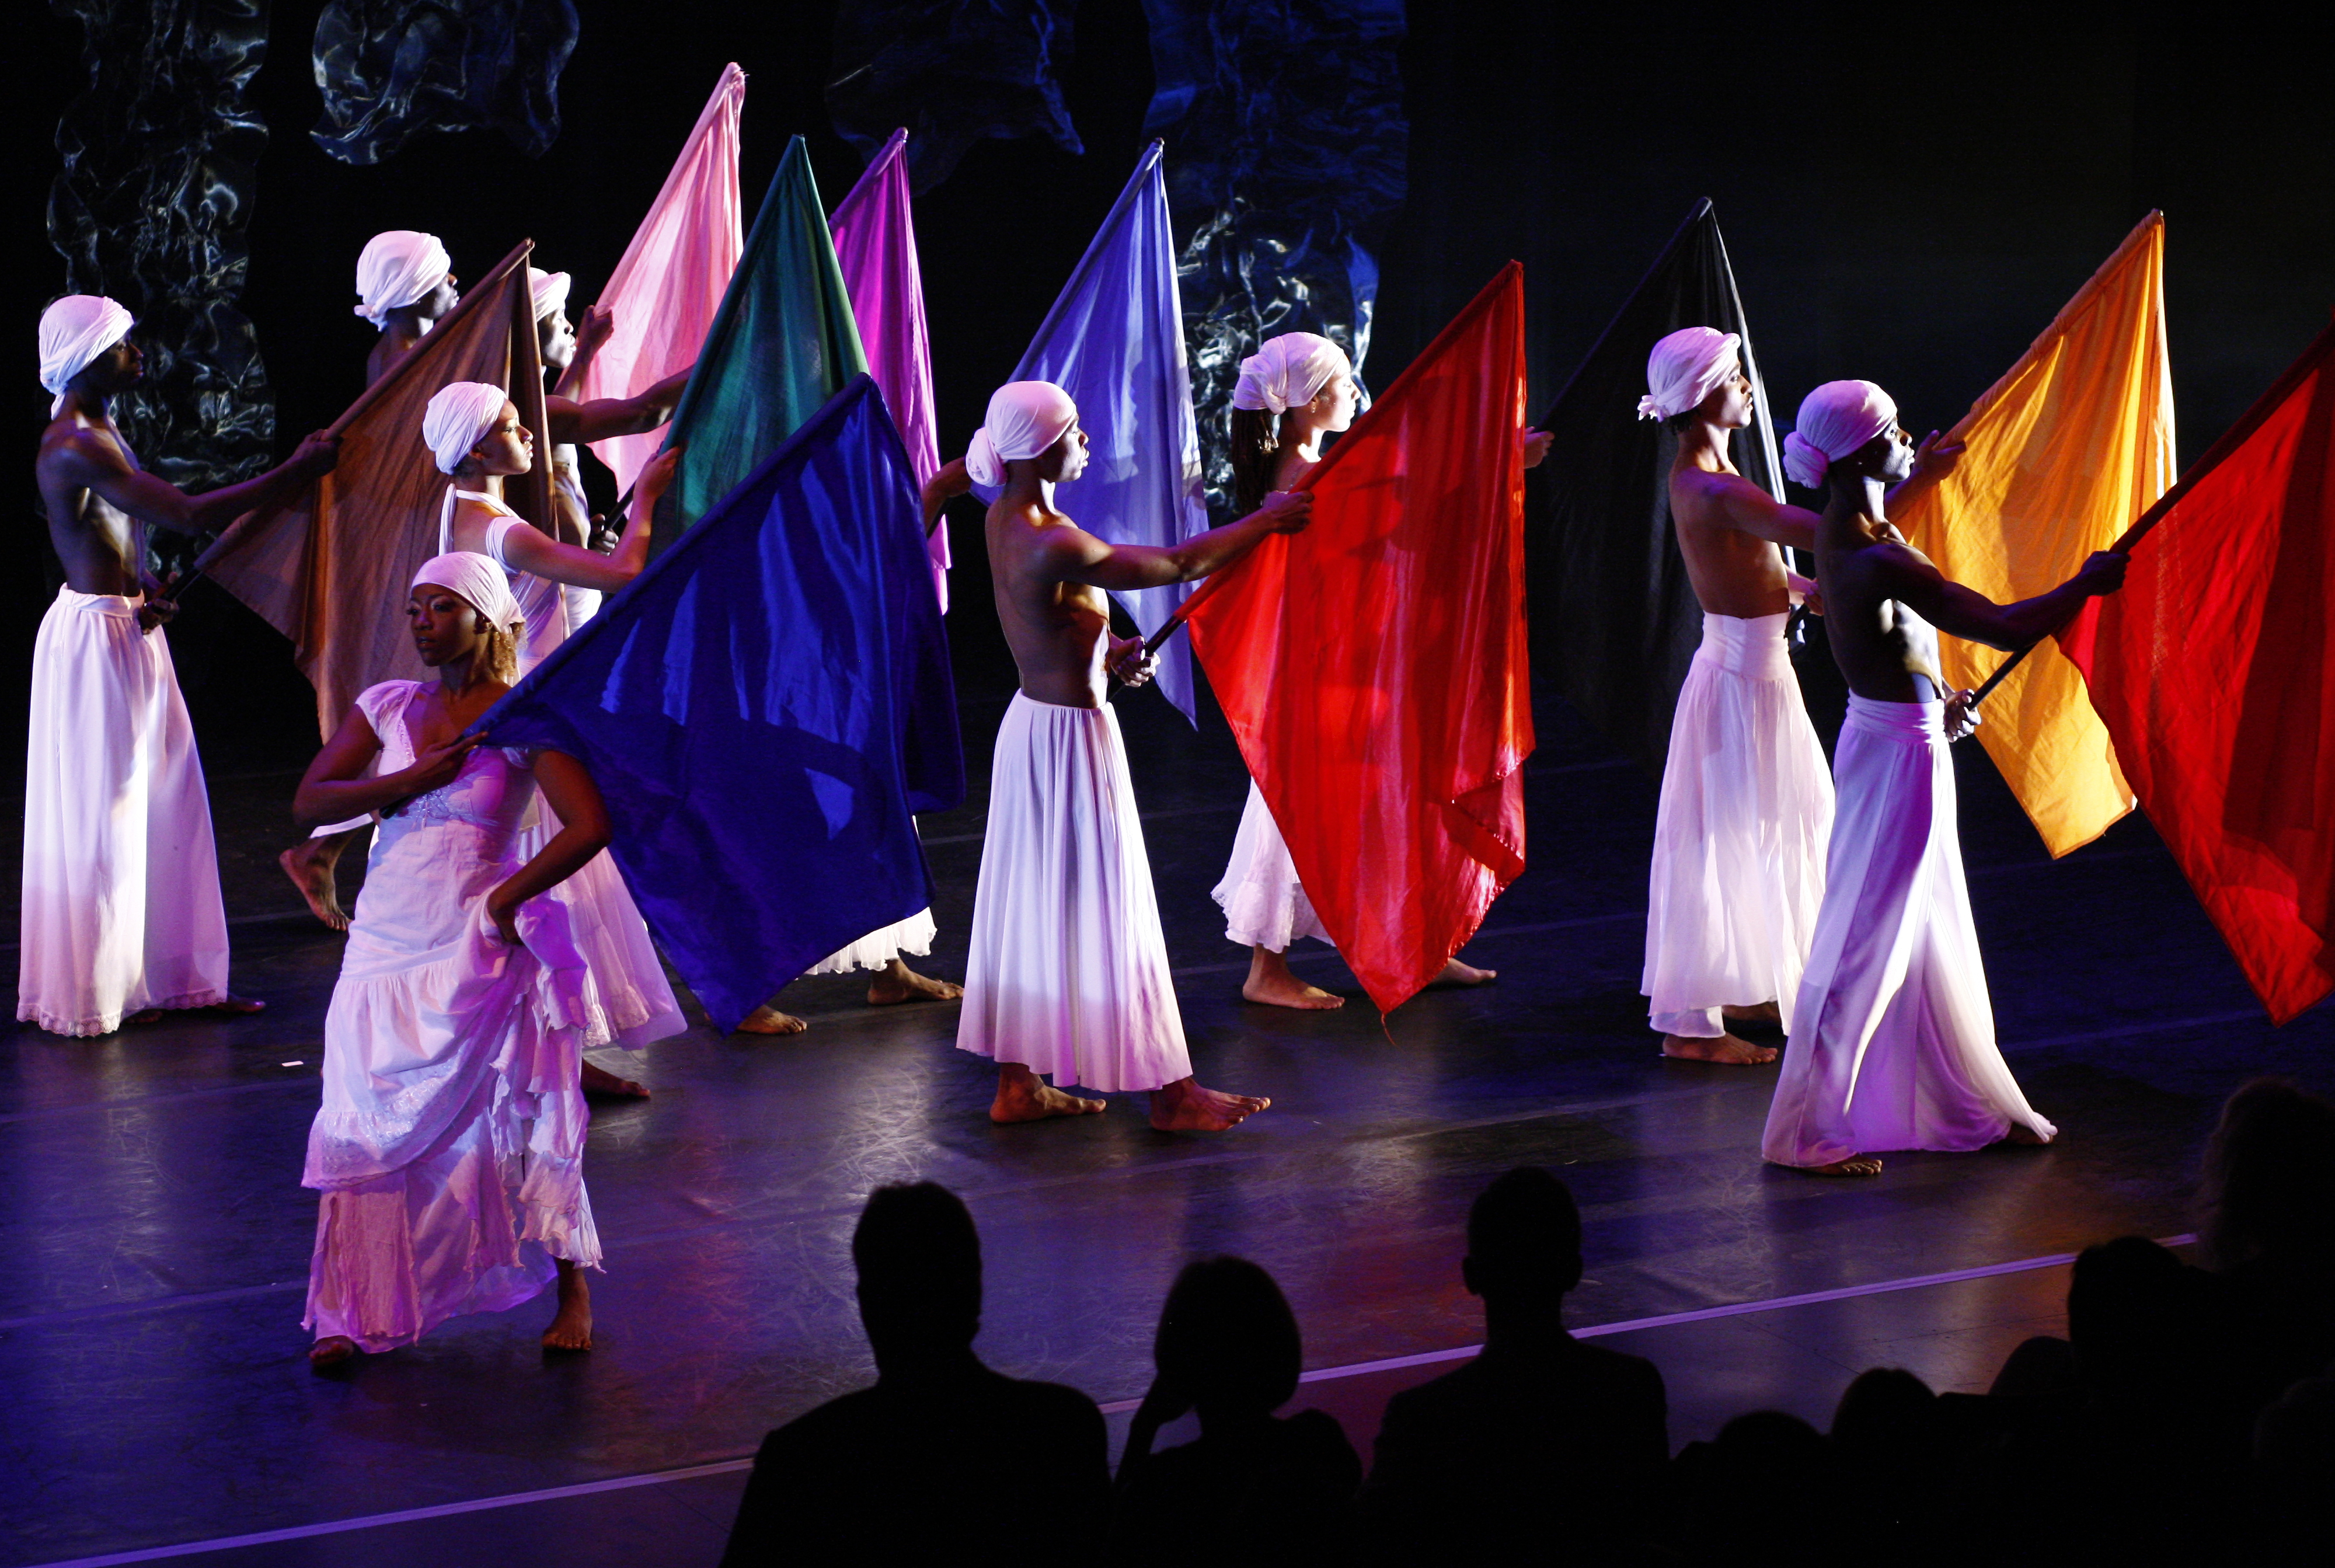 Vibrance at Ayikodans at the Adrienne Arsht Center Photo by Carl Juste